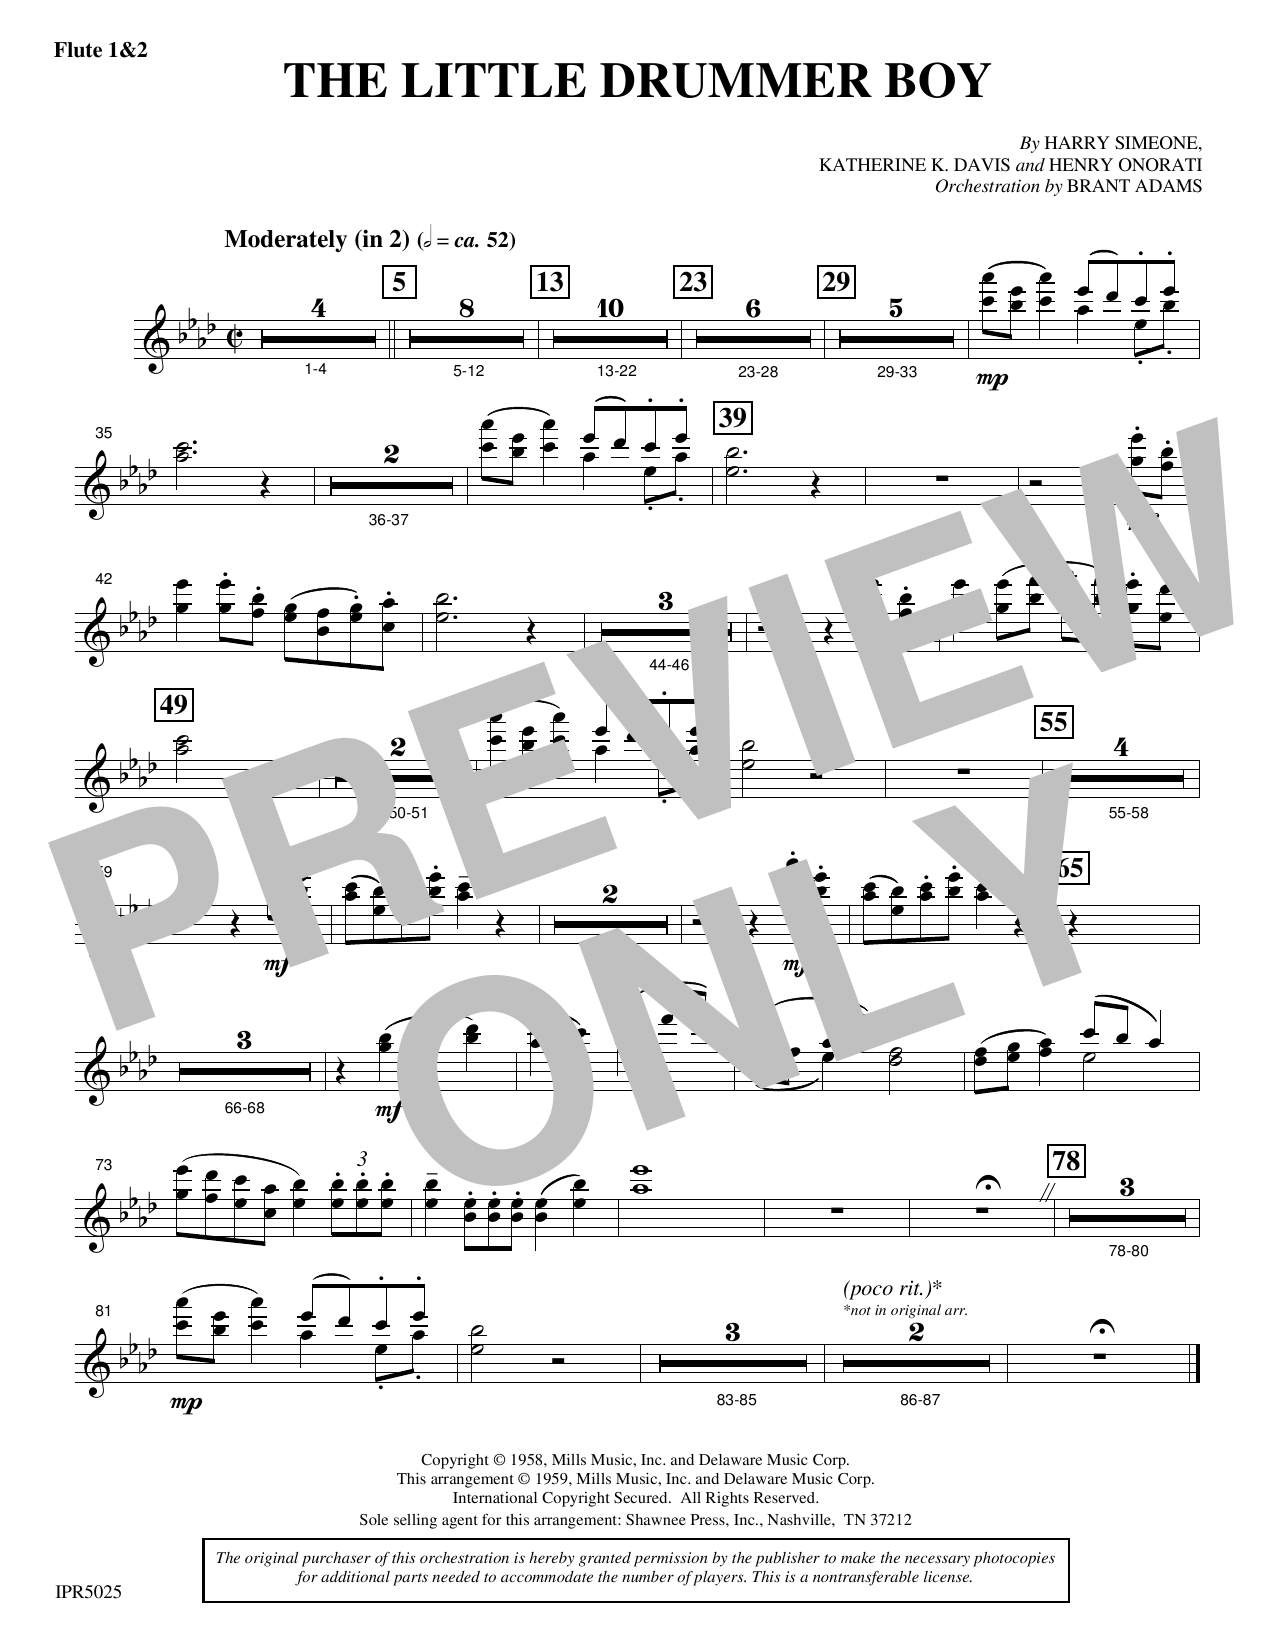 Harry Simeone The Little Drummer Boy - Flute 1 & 2 sheet music notes and chords. Download Printable PDF.